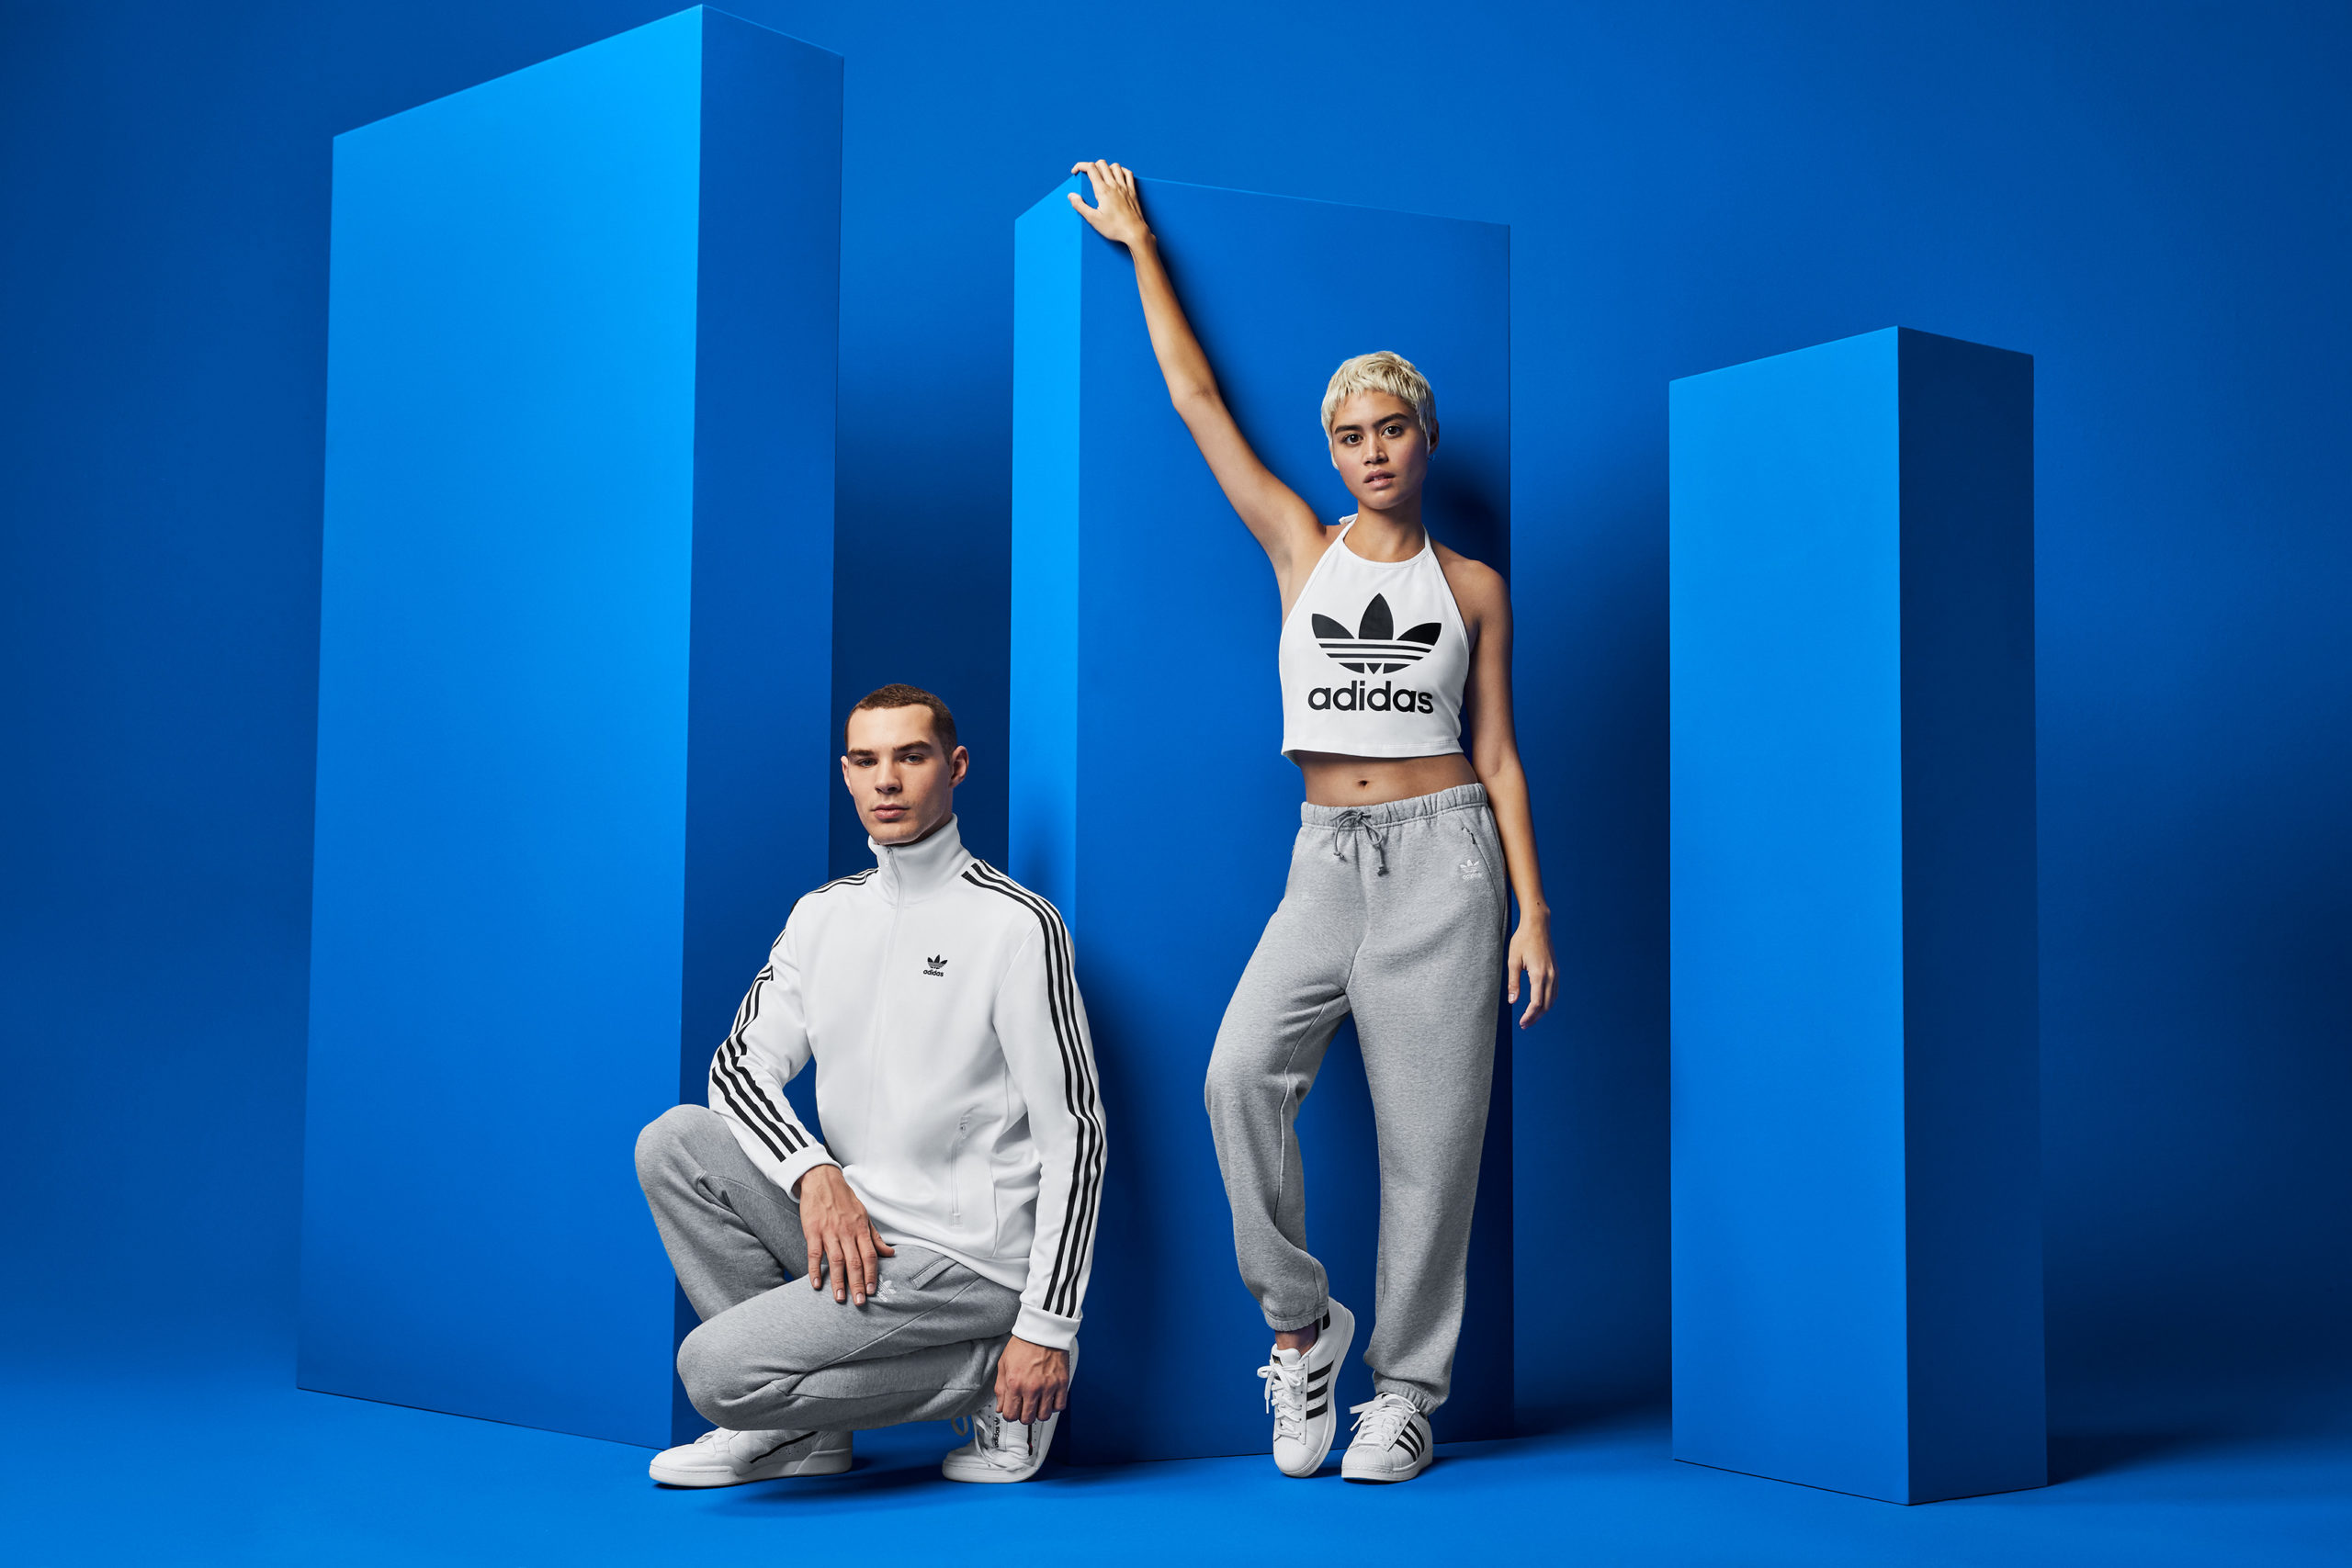 Two models, in white and gray, kneel and stand in a blue set in front of three blue modular towers.